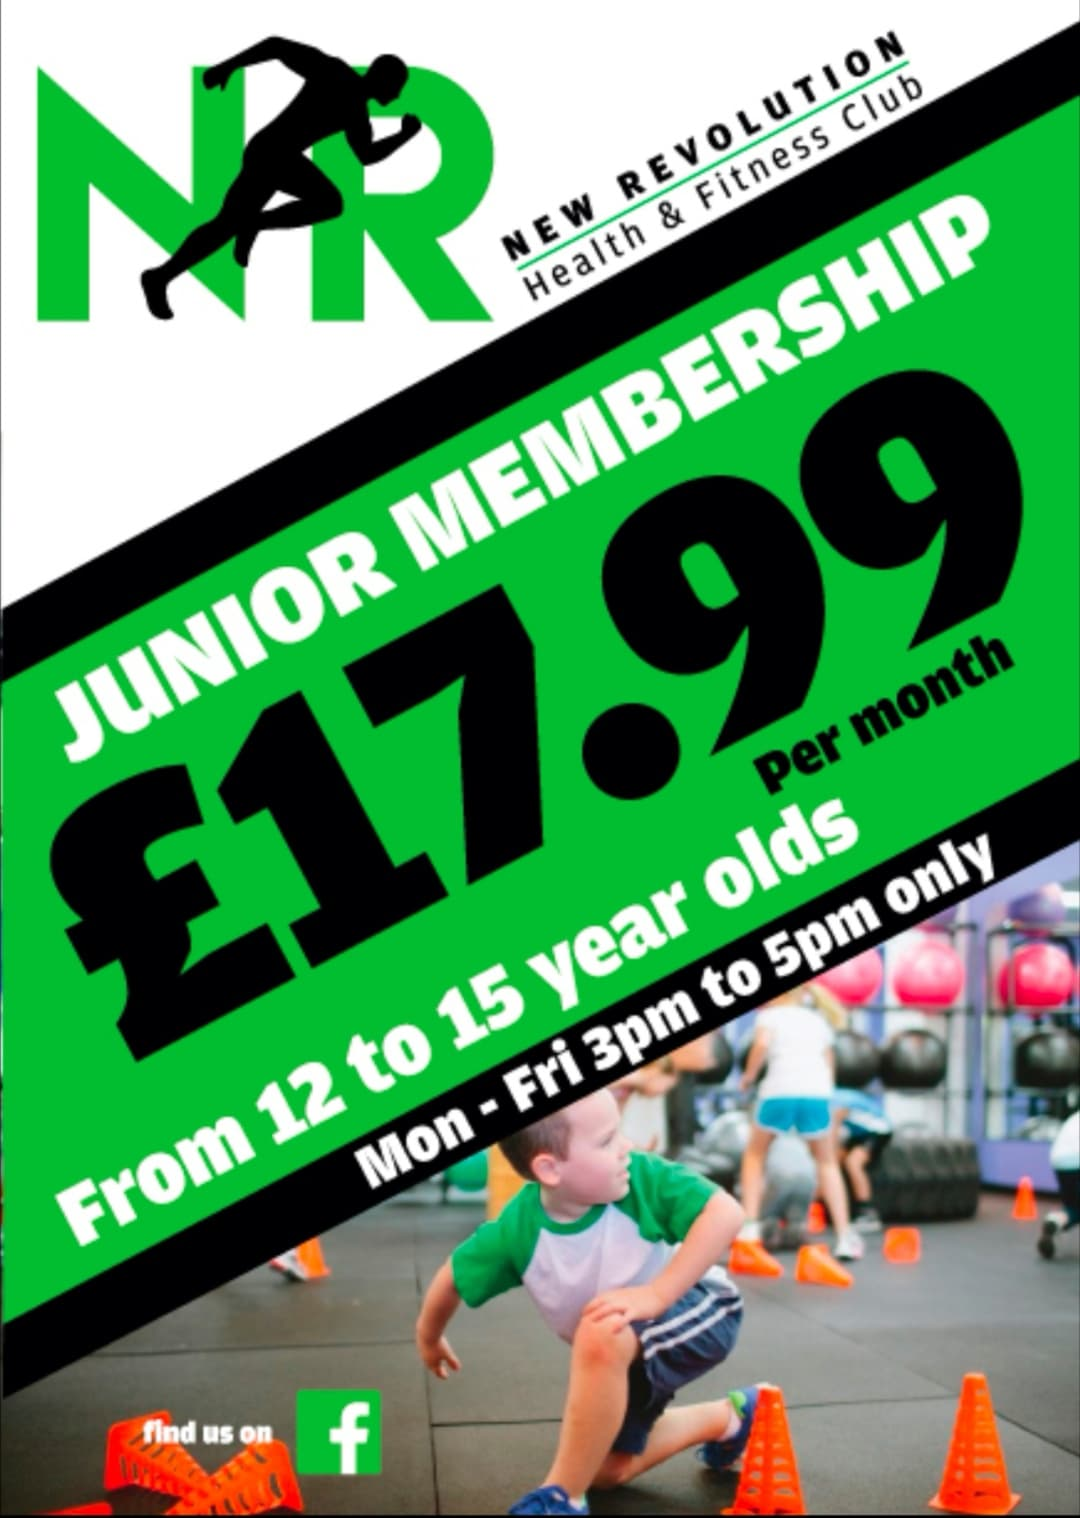 Junior Memberships